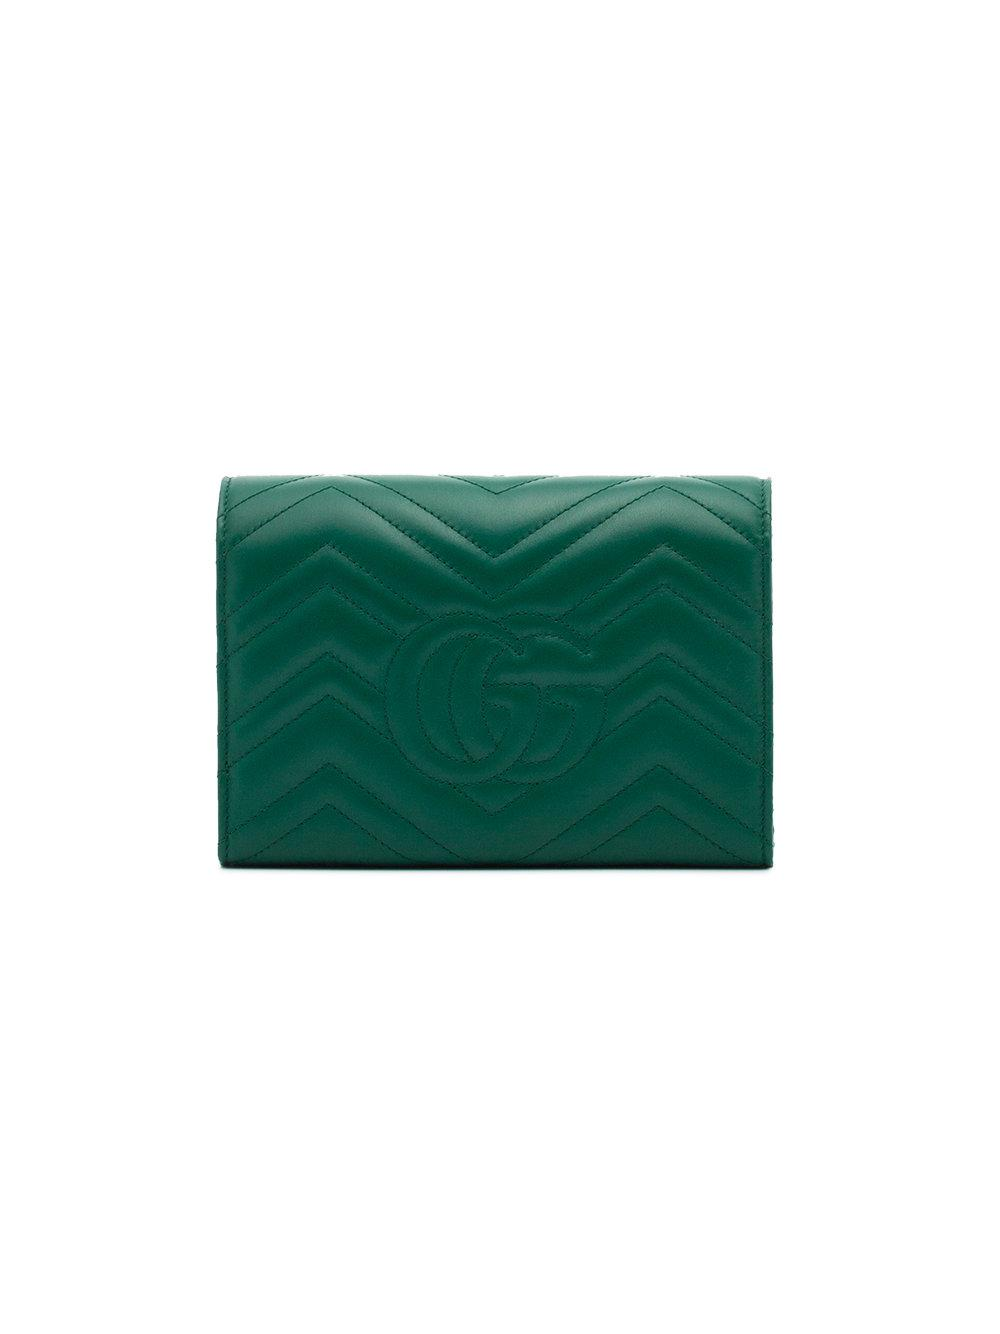 c7a927bfd409bc Gg Marmont Small Matelassé Shoulder Bag Green | Stanford Center for ...